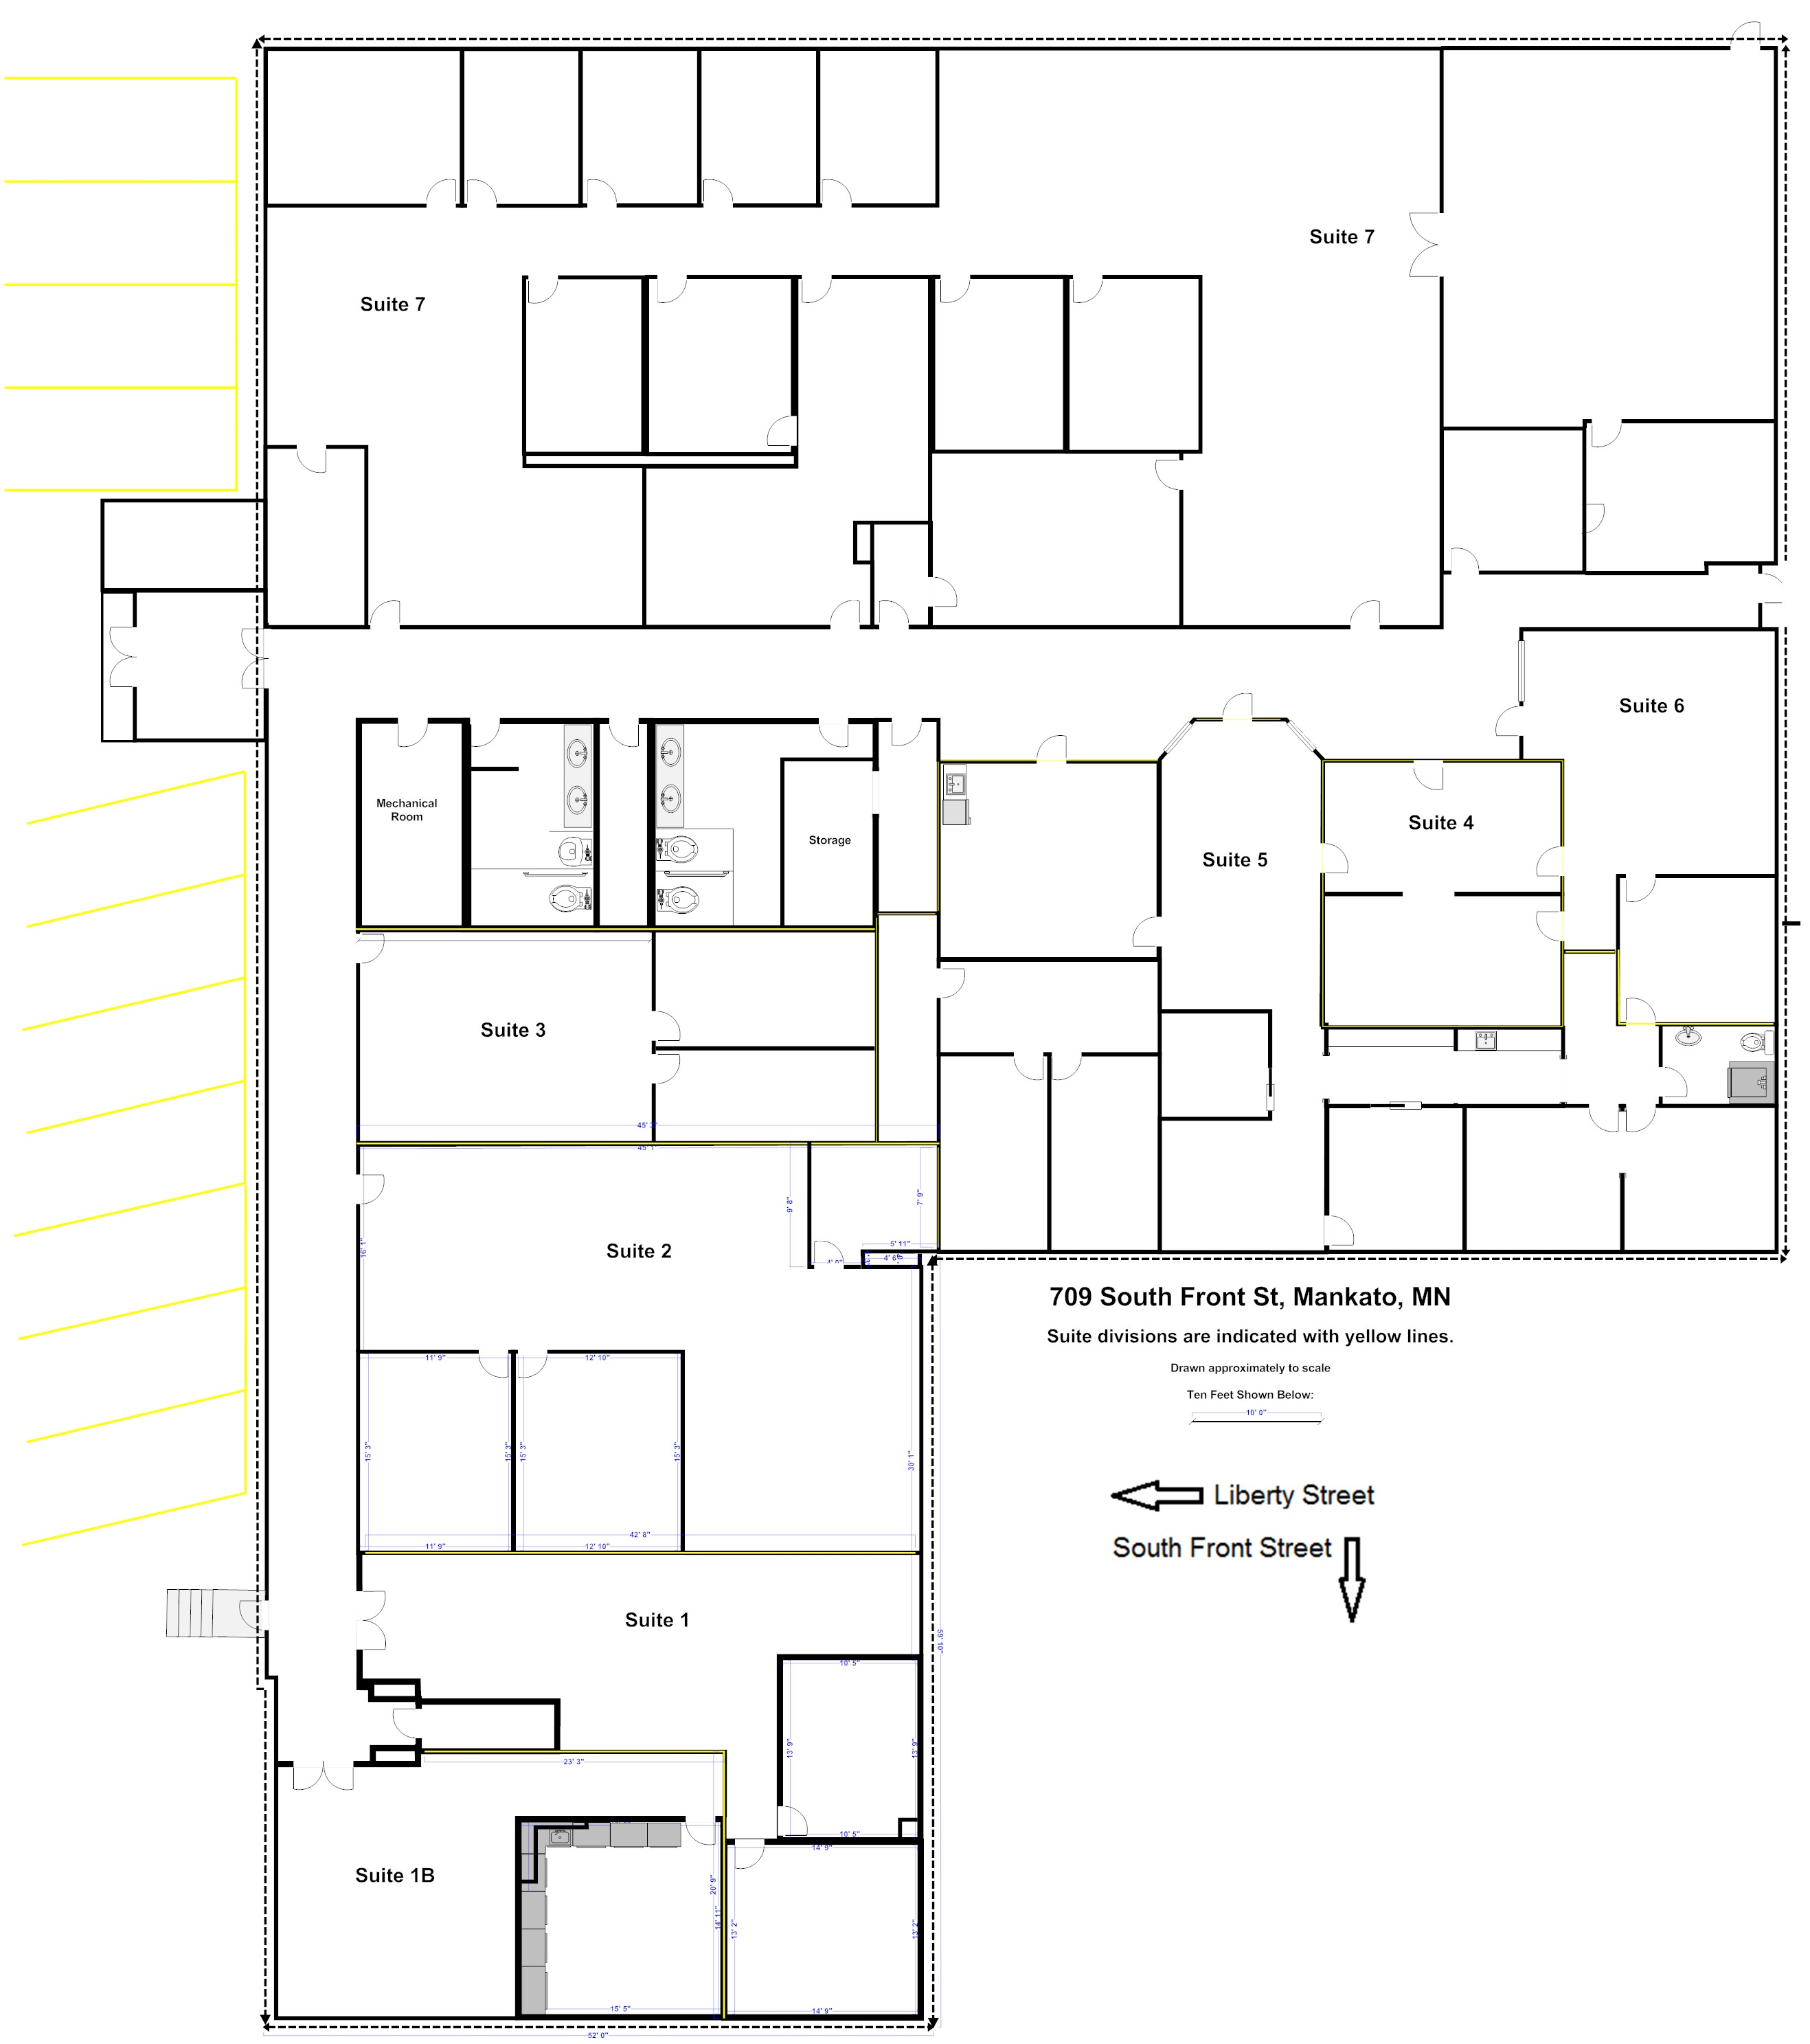 Office space plans Basic Office Space For Lease In Downtown Mankato Allanrich Downtown Mankato Office Space For Lease In The Truth Building